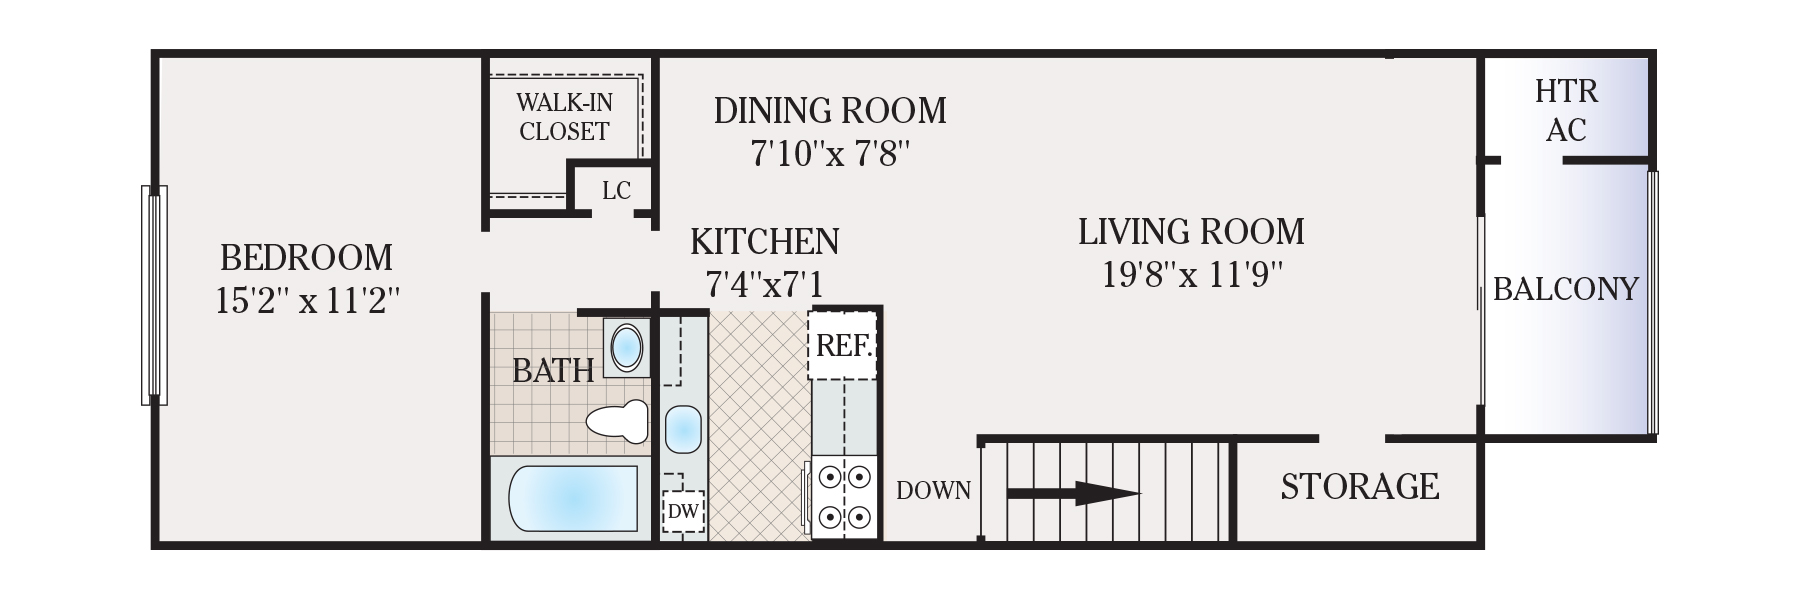 650 sq ft apartment floor plan 650 sqft flat floor plan for 650 square feet floor plan